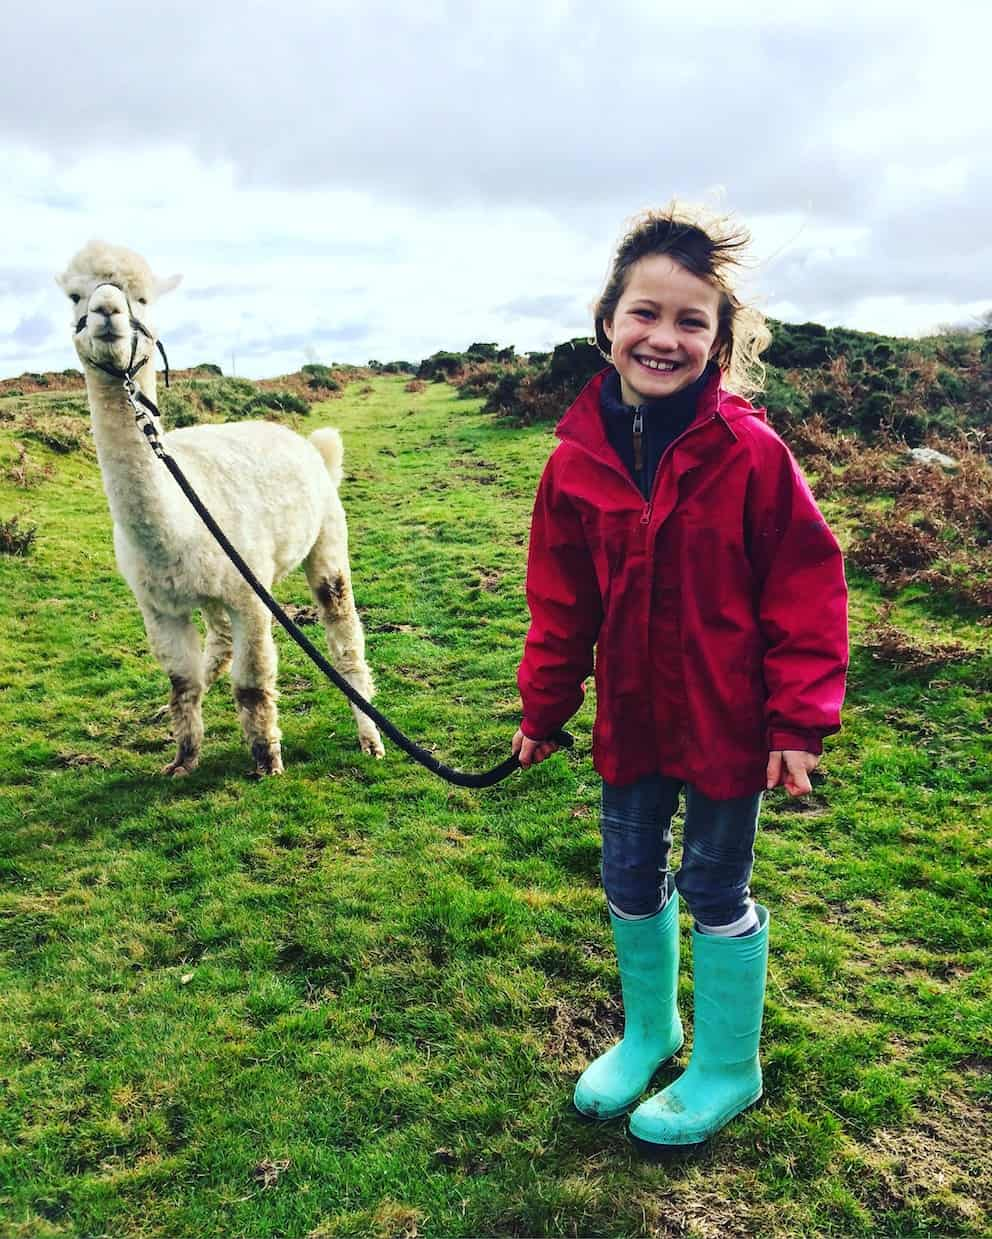 little girl smiling with an alpaca on a lead